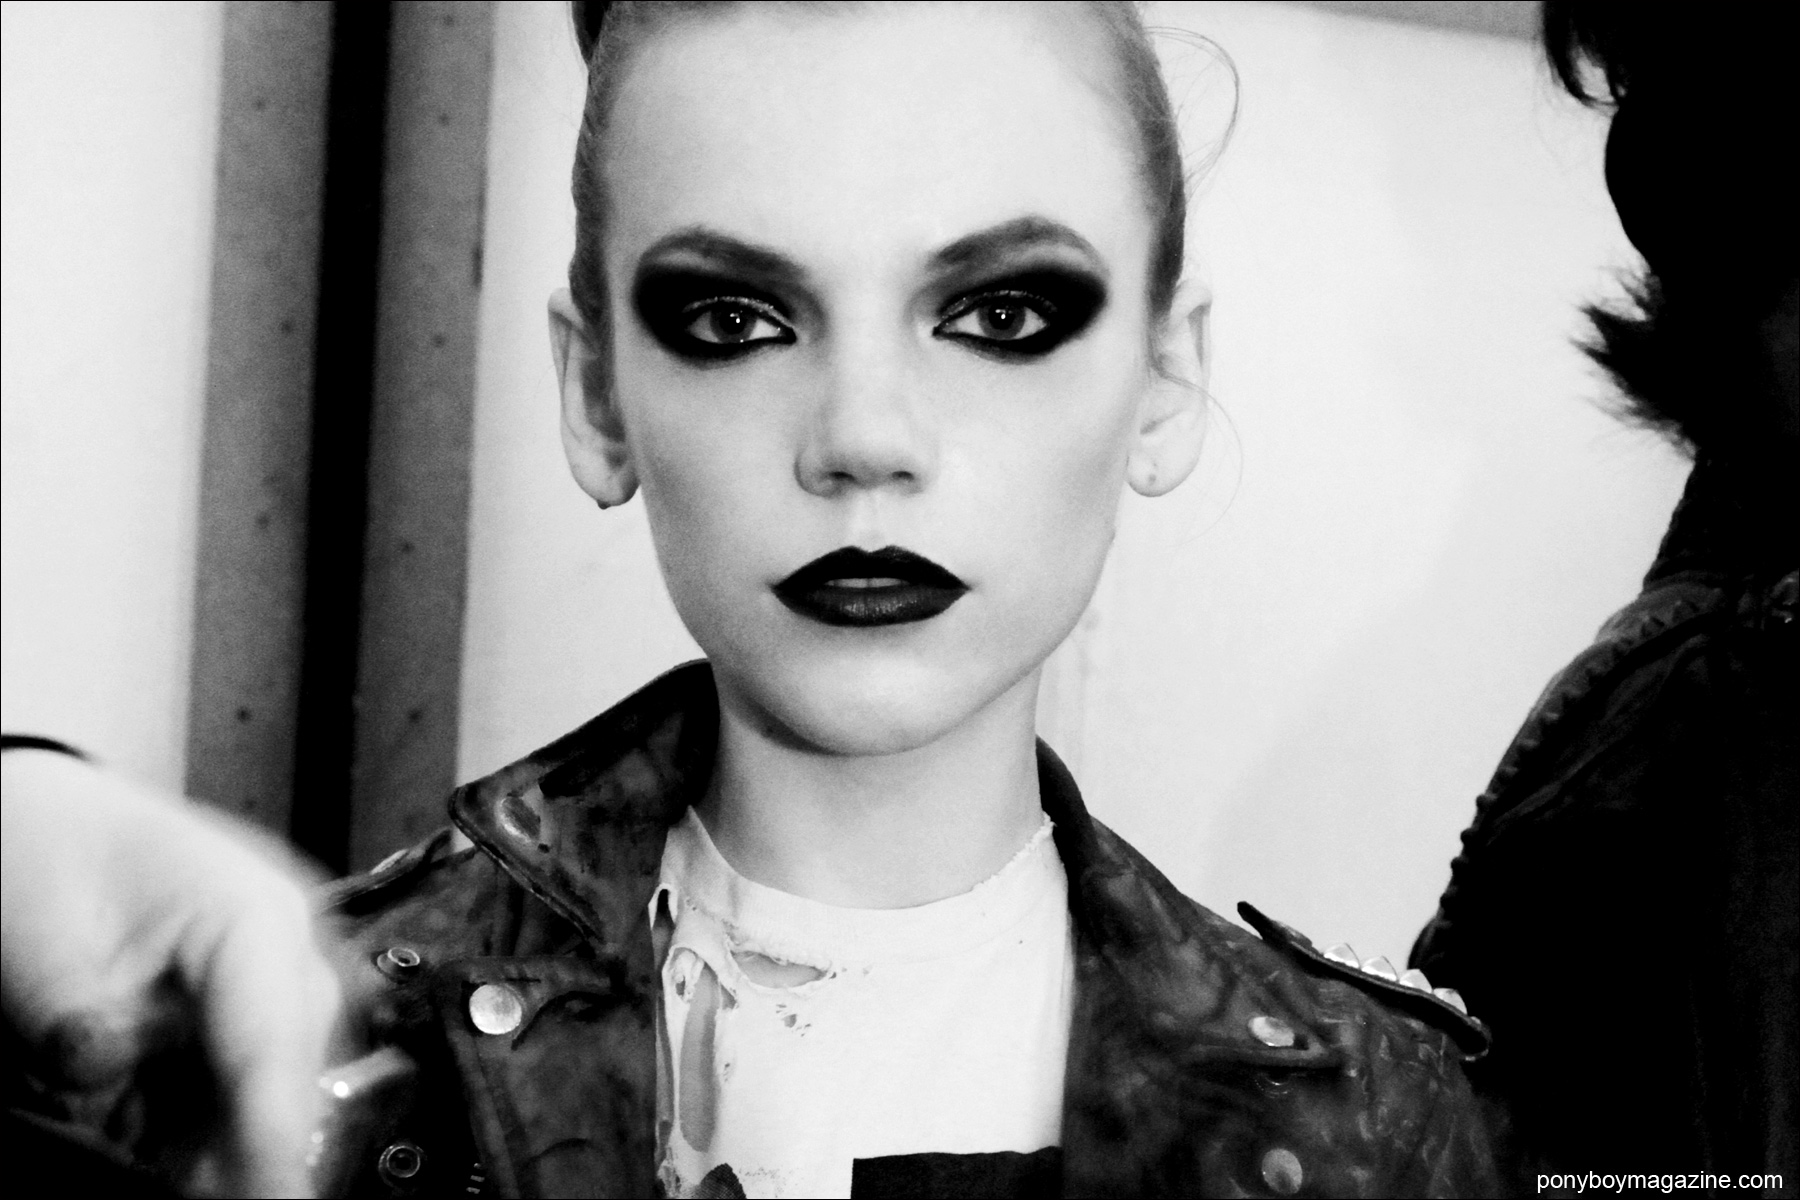 Backstage Punk Beauty, photographed by Alexander Thompson for Ponyboy Magazine at the Christian Benner A/W 2014 runway at New York City's Pier 59 Studios.